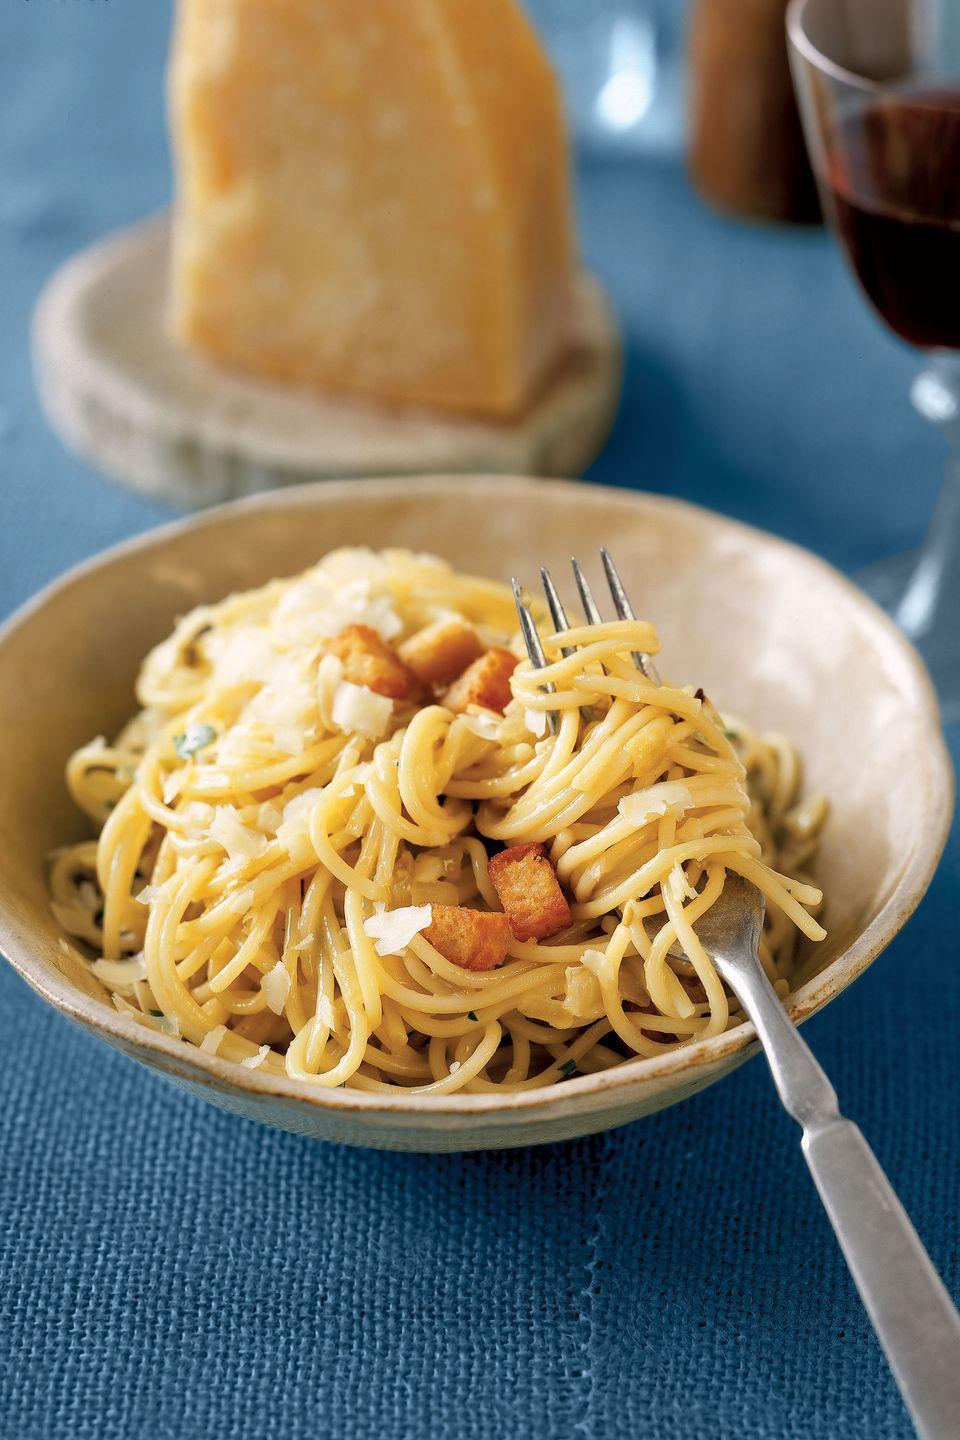 "Quick and easy pasta begins with basic ingredients, such as mushrooms, onions, and red peppers. An egg yolk is tossed with the ingredients and heated through before serving to glaze the pasta in rich, creamy flavor. Finish with a sprinkle of a fragrant, nutty cheese. <a href=""https://www.countryliving.com/food-drinks/recipes/a791/easy-pantry-pasta/"" rel=""nofollow noopener"" target=""_blank"" data-ylk=""slk:Get the recipe"" class=""link rapid-noclick-resp""><strong>Get the recipe</strong></a><strong>.</strong>"